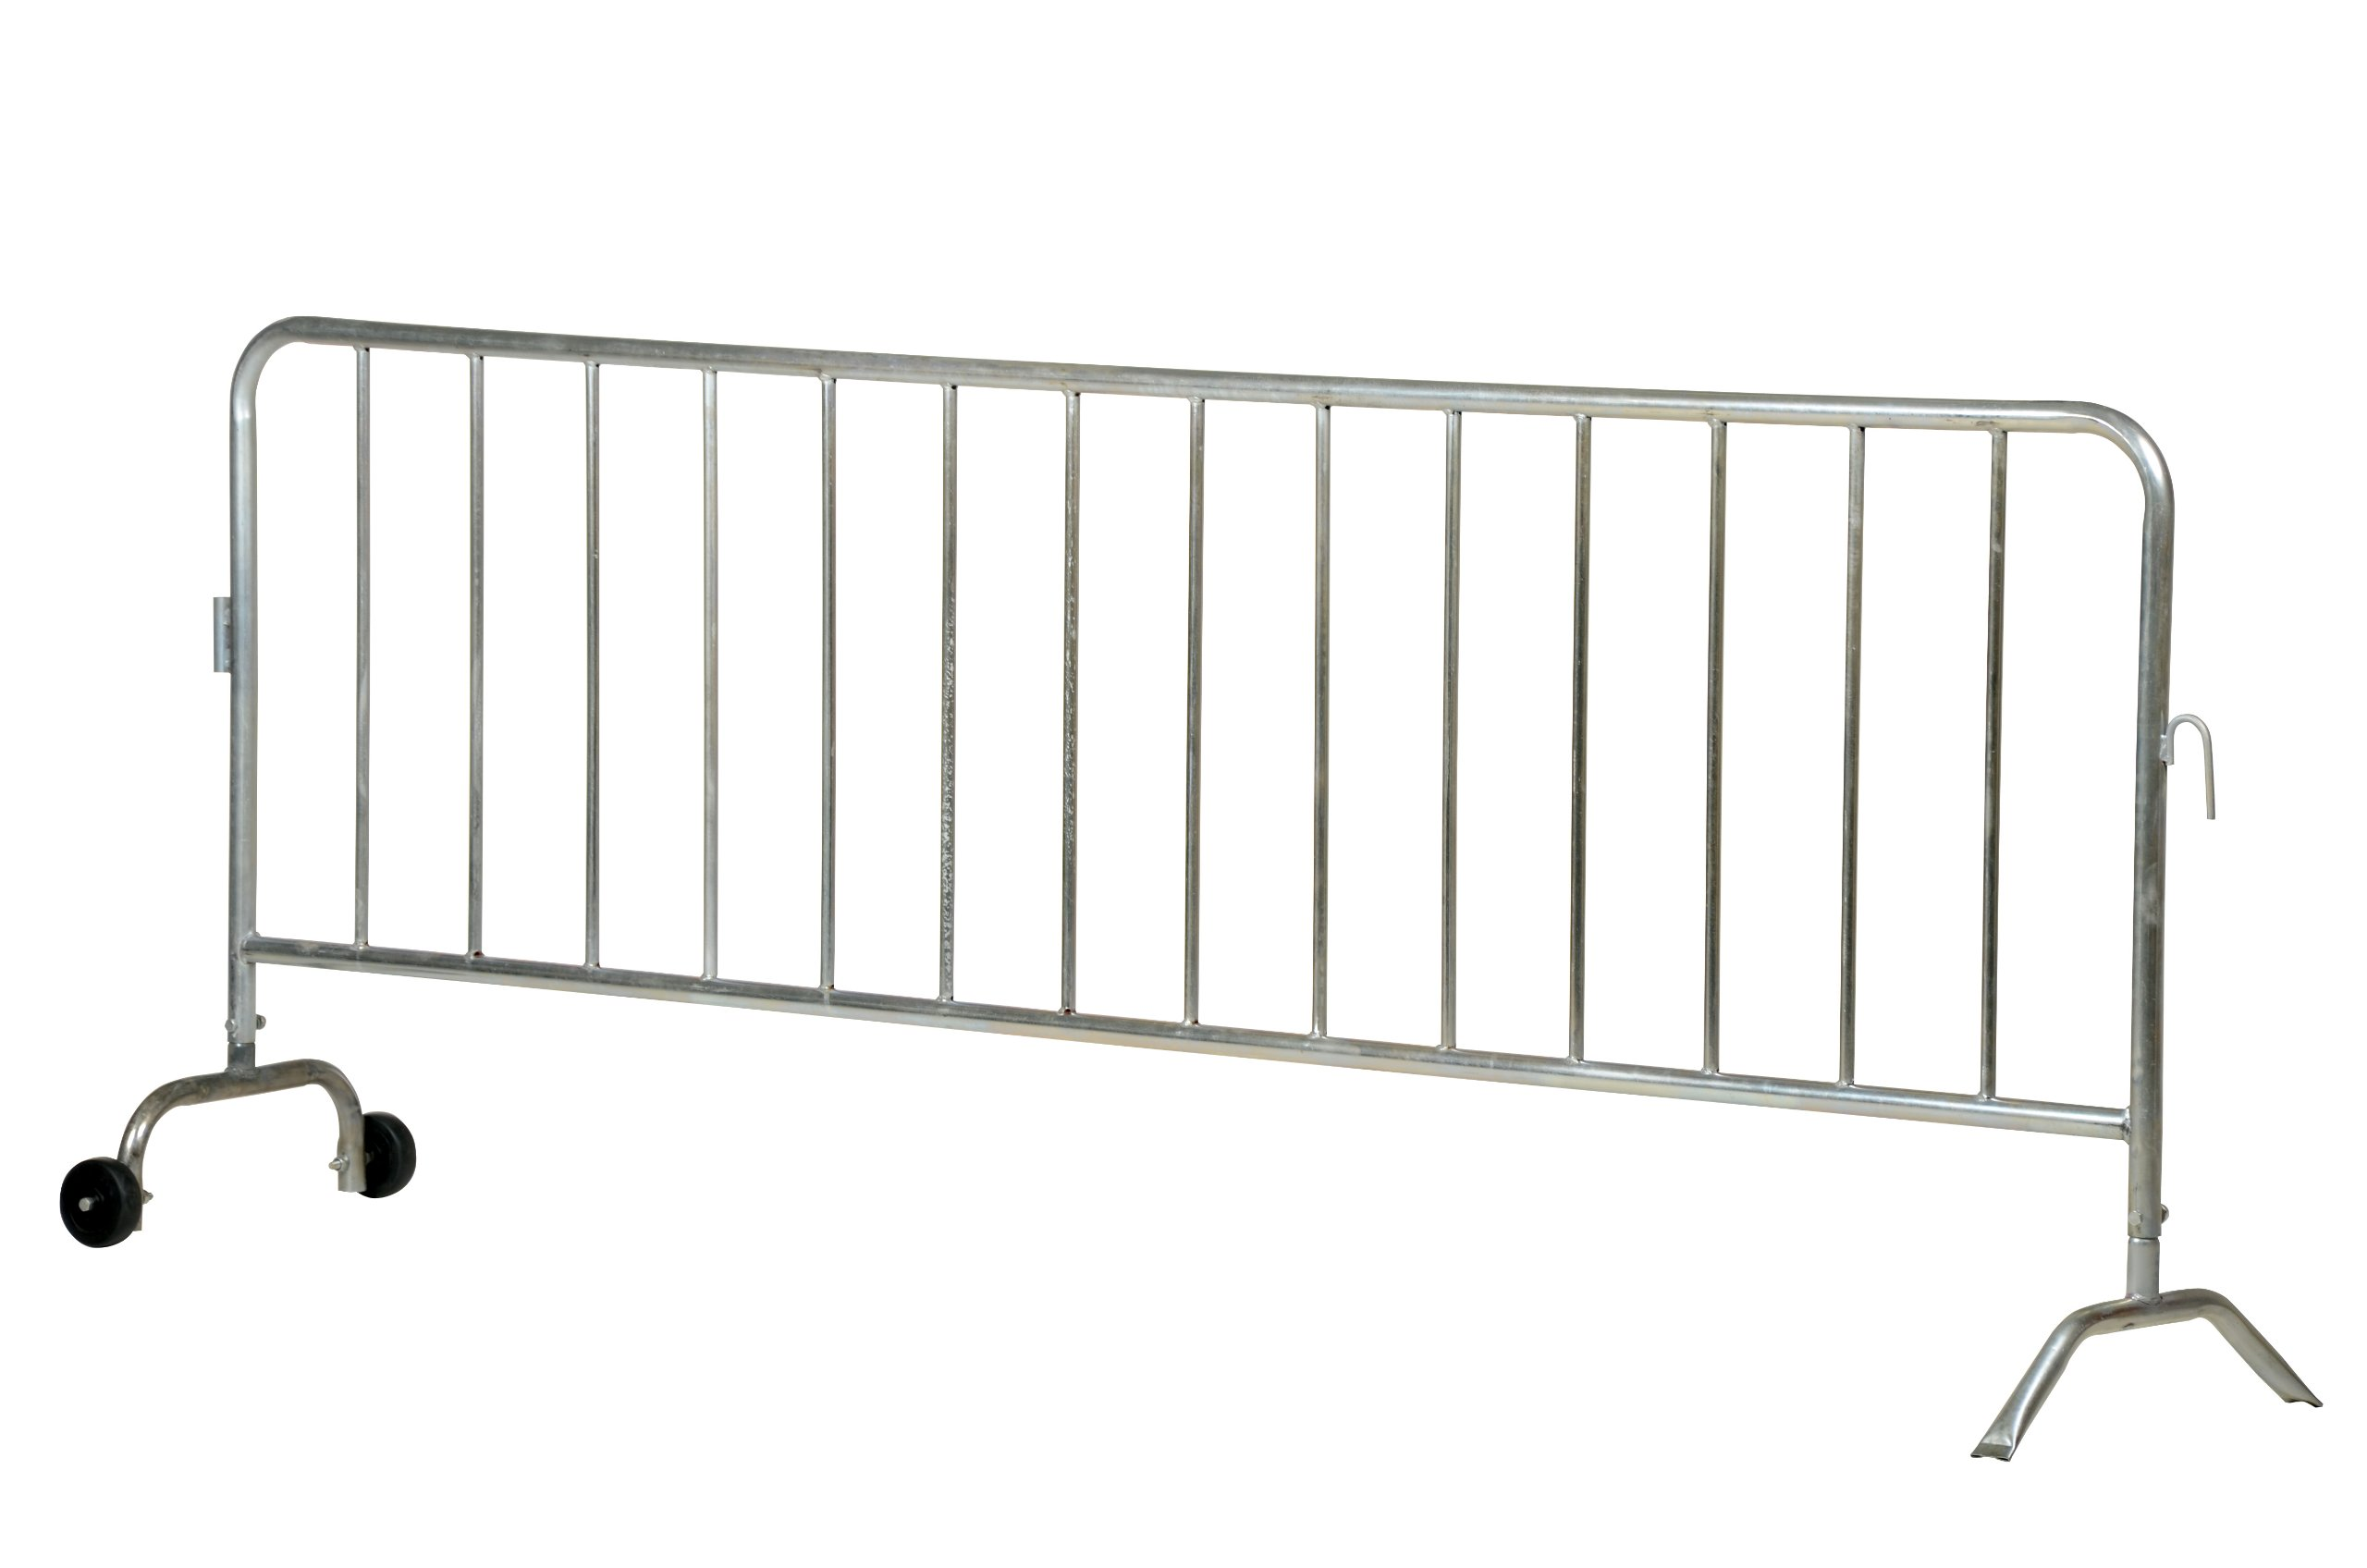 Vestil PRAIL-102-G-W Steel Crowd Control Interlocking Barrier with 1 Wheel and 1 Curved Foot, Light Weight, 5/8'', Rail Diameter (L x W x H) 102'' x 20'' x 42'', Zinc Plated by Vestil